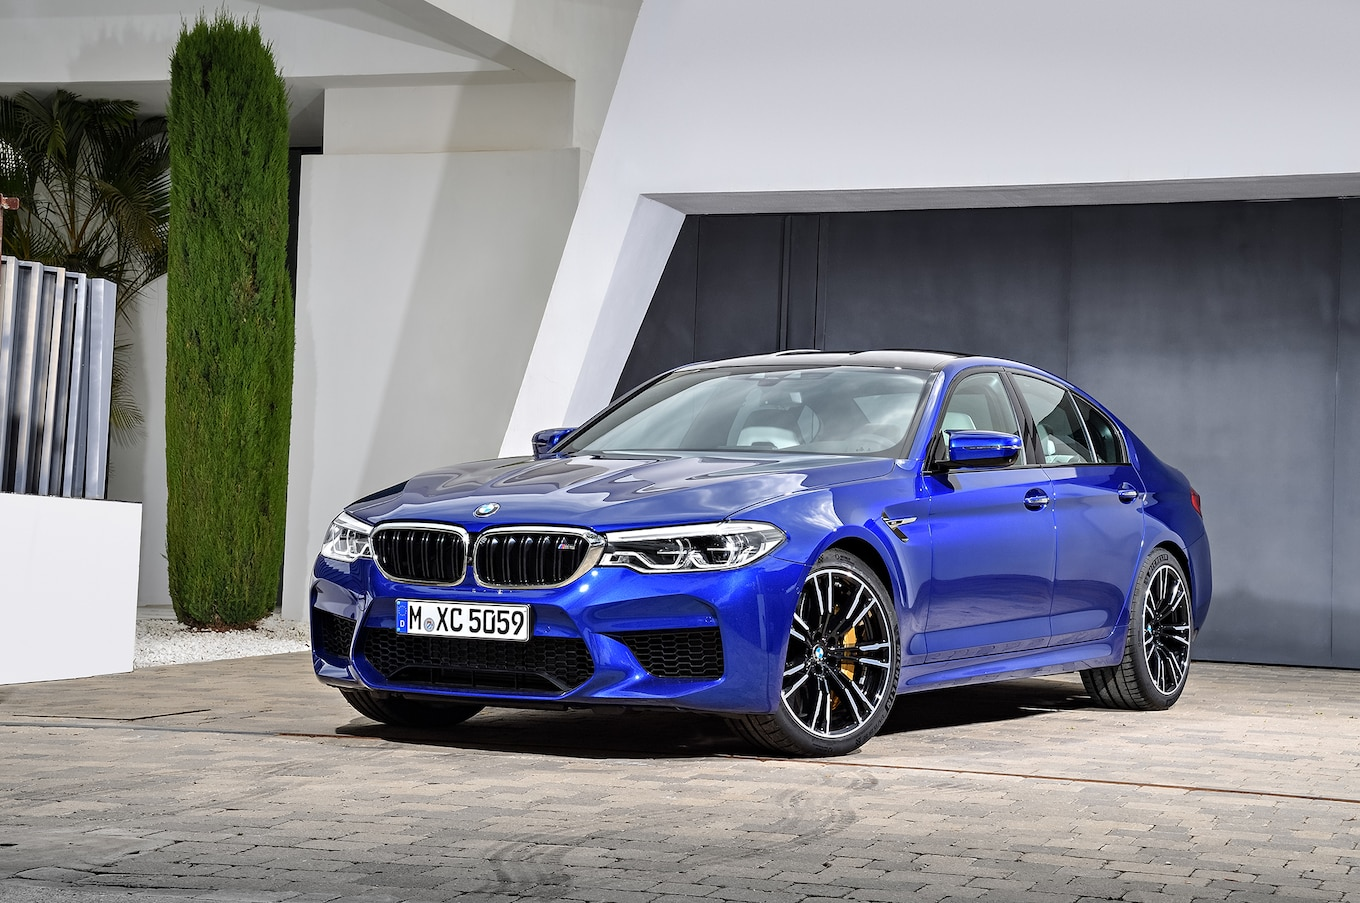 2018 Bmw M5 First Look Review  Motor Trend